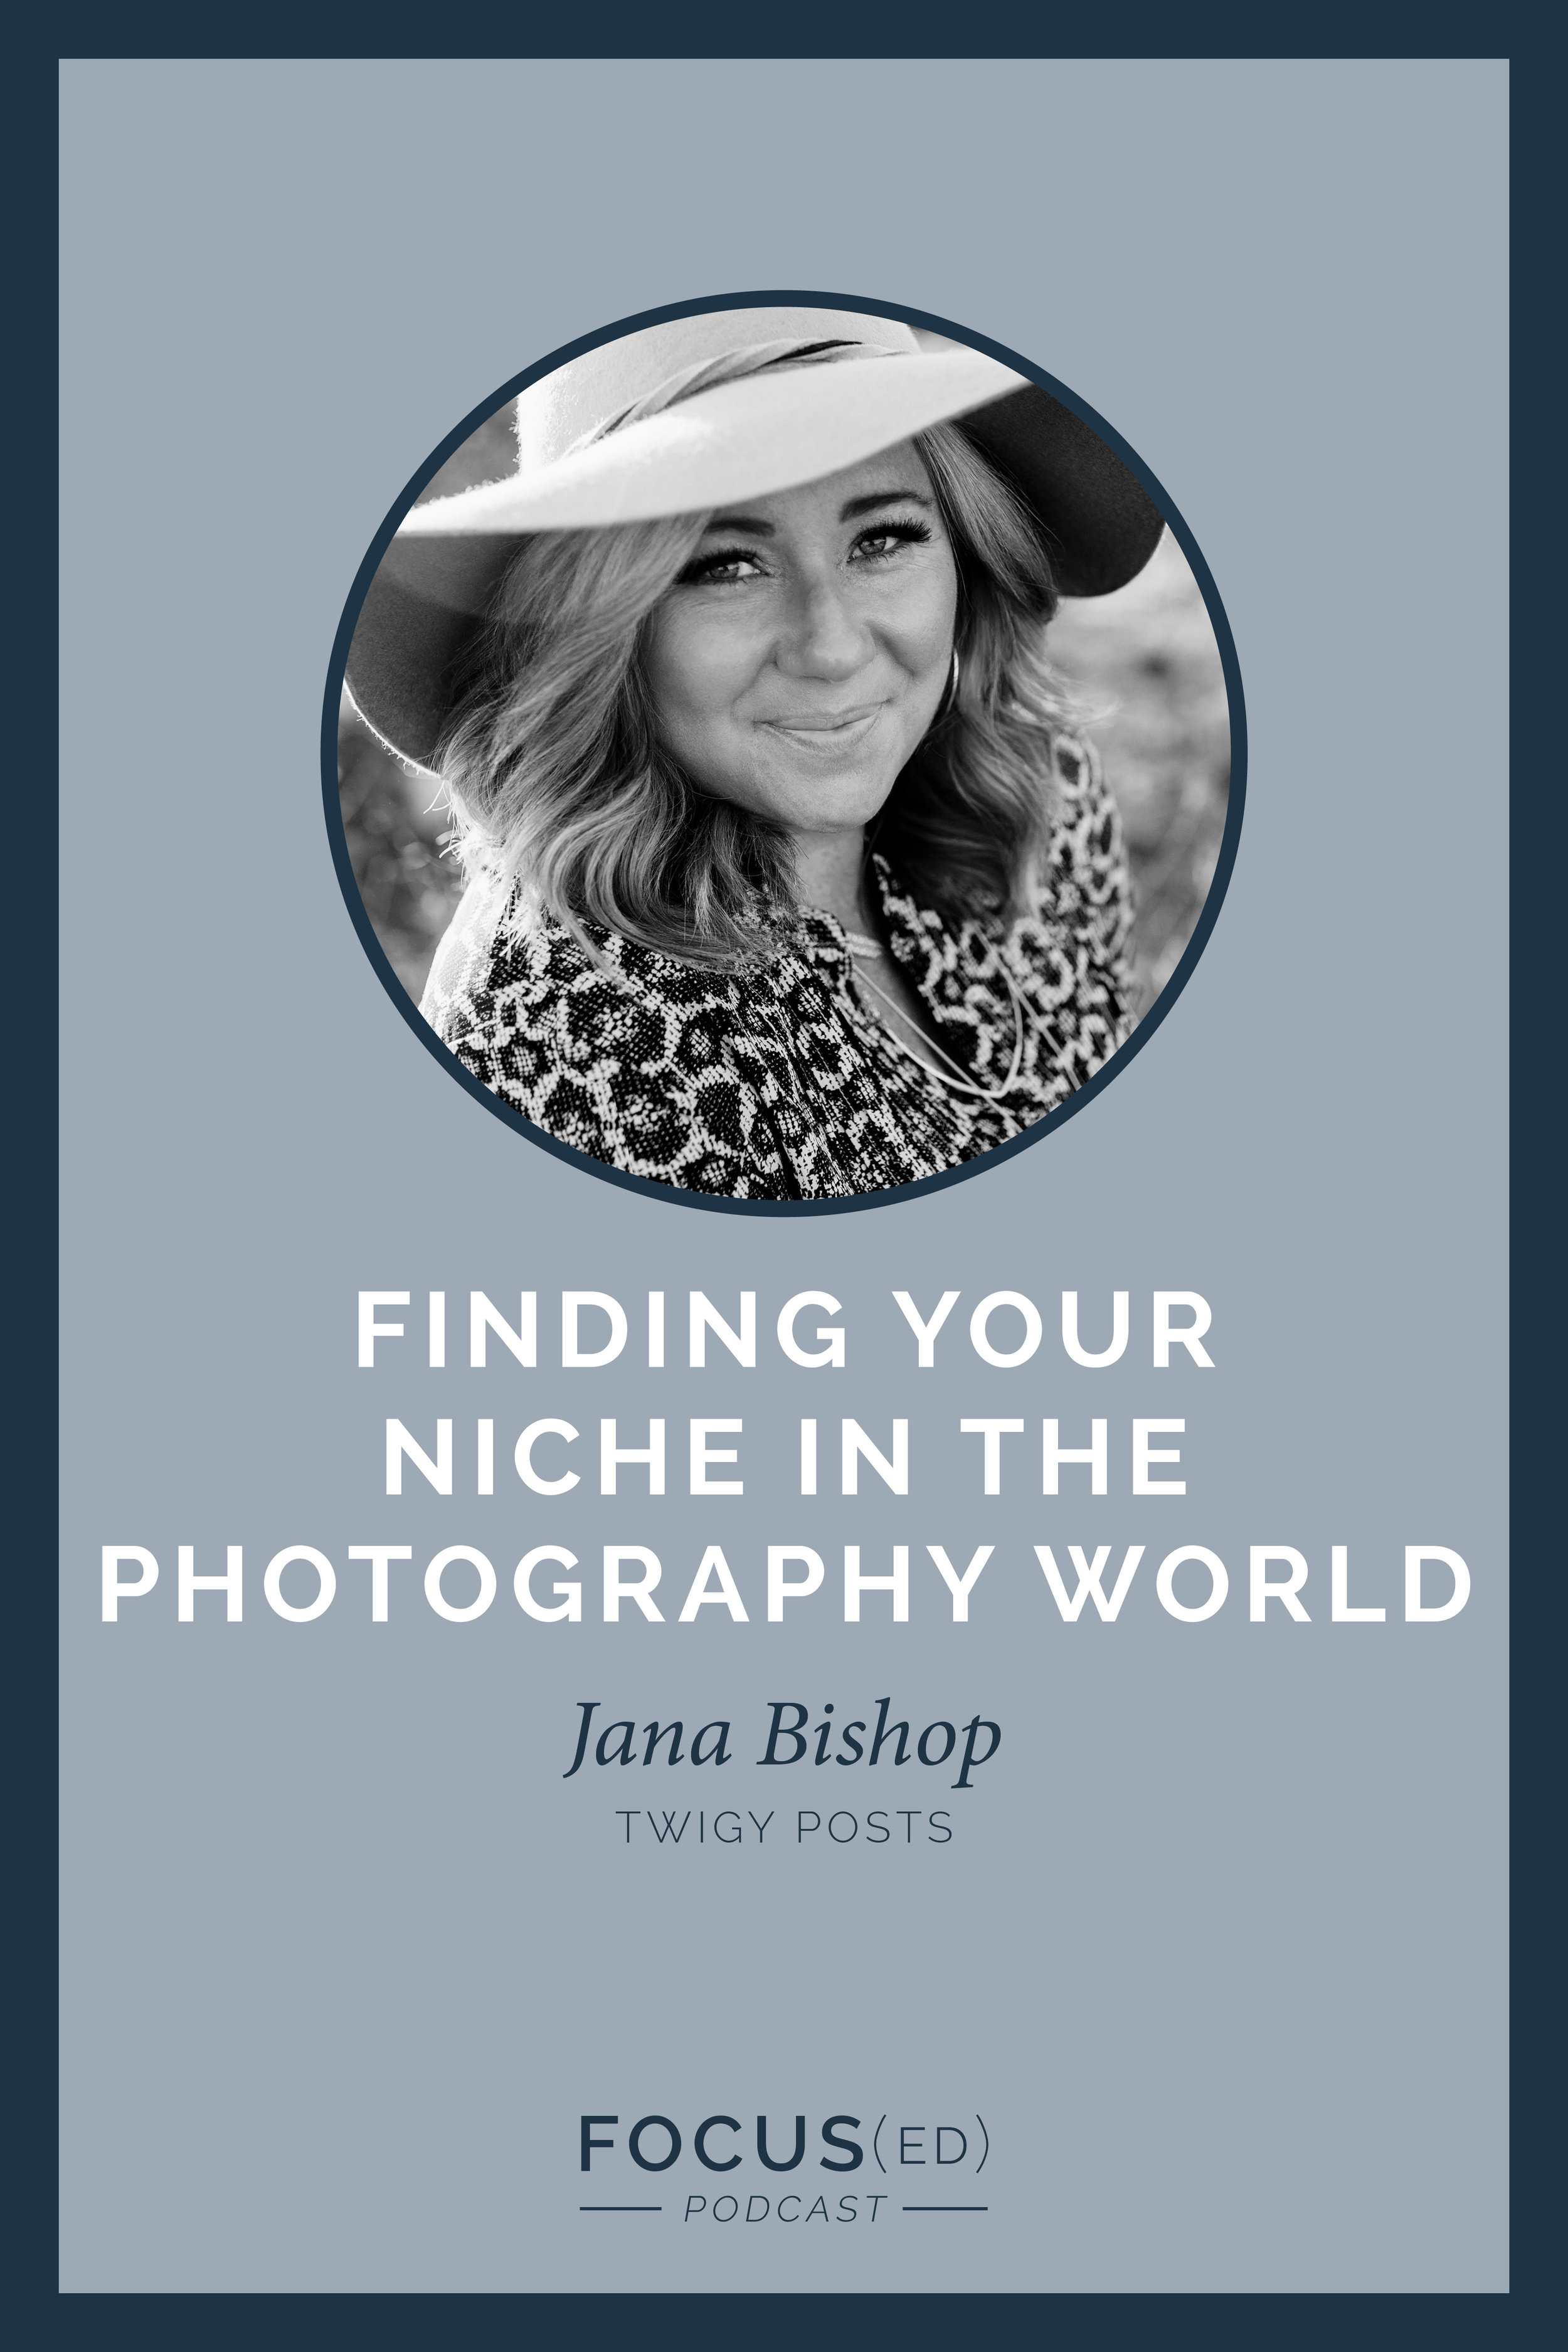 Saturated markets shouldn't keep you from pursuing your niche. | Focus(ed) Podcast with Jana Bishop